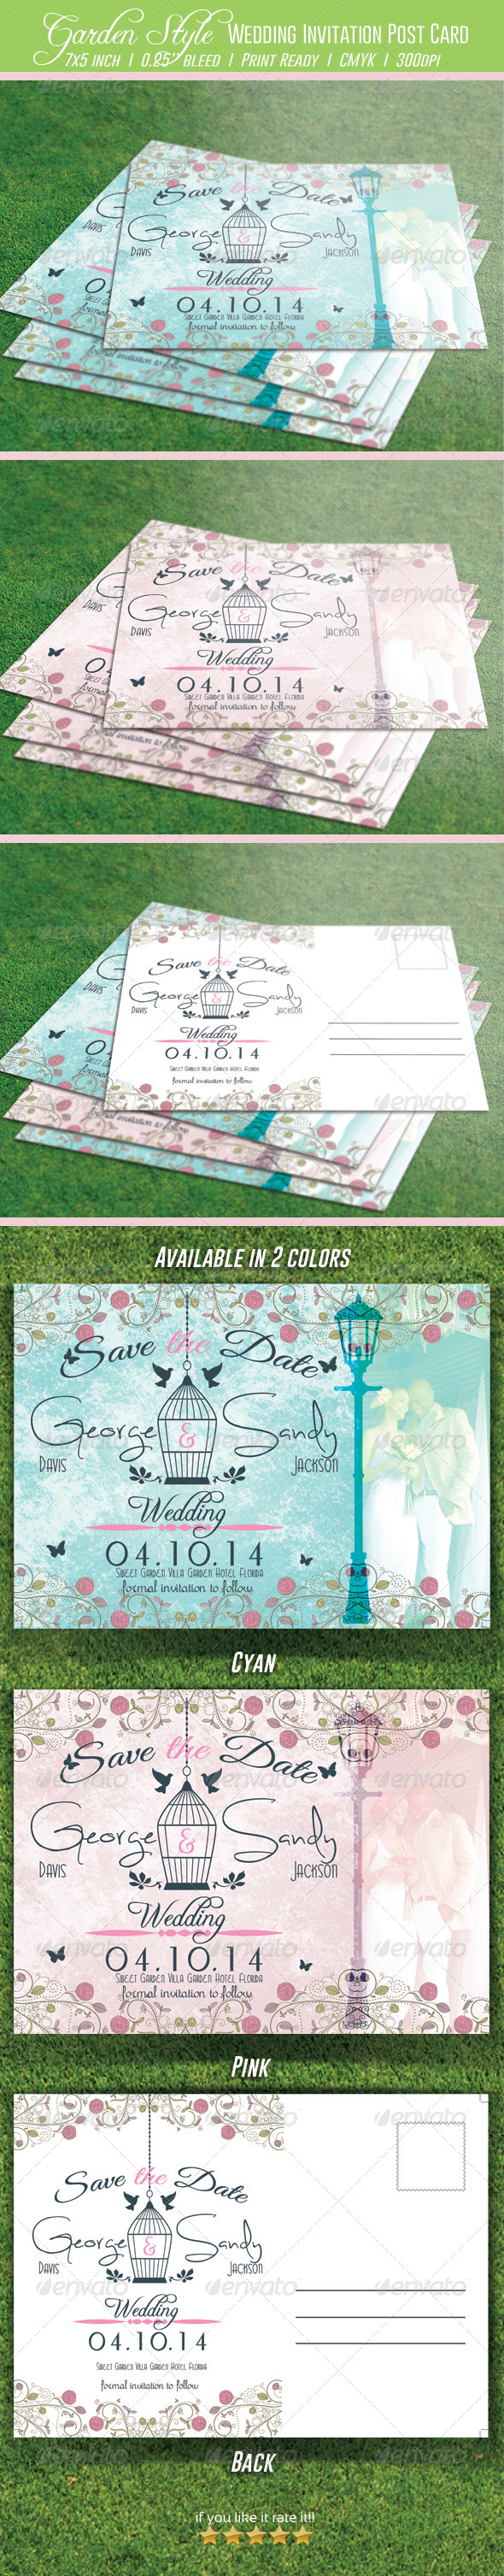 GraphicRiver Garden Style Wedding Invitation Post Card 7082102